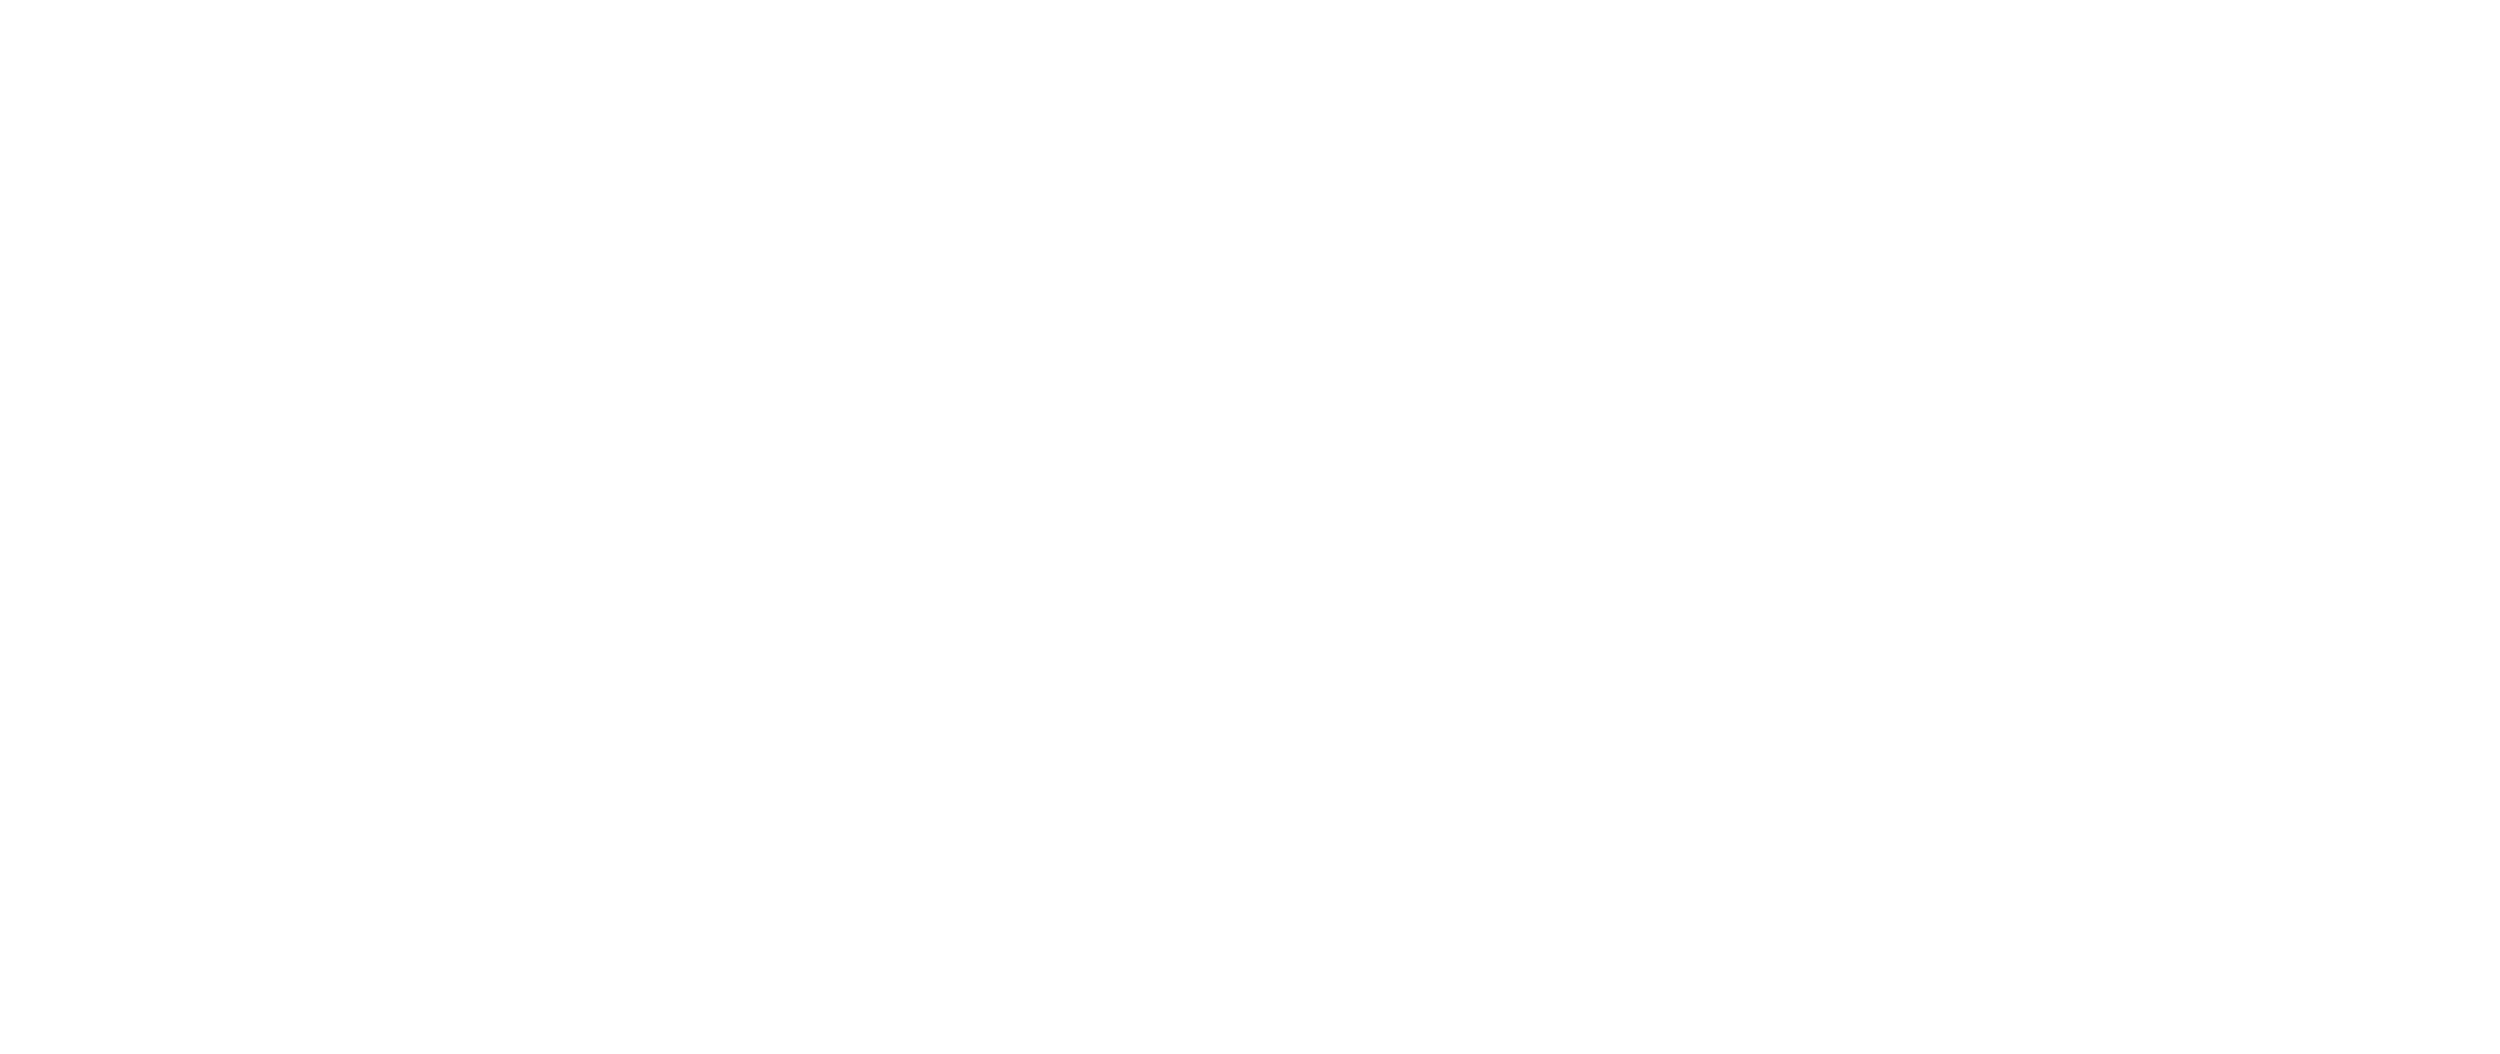 Bike Rehoming Tally Marks-01-01.png